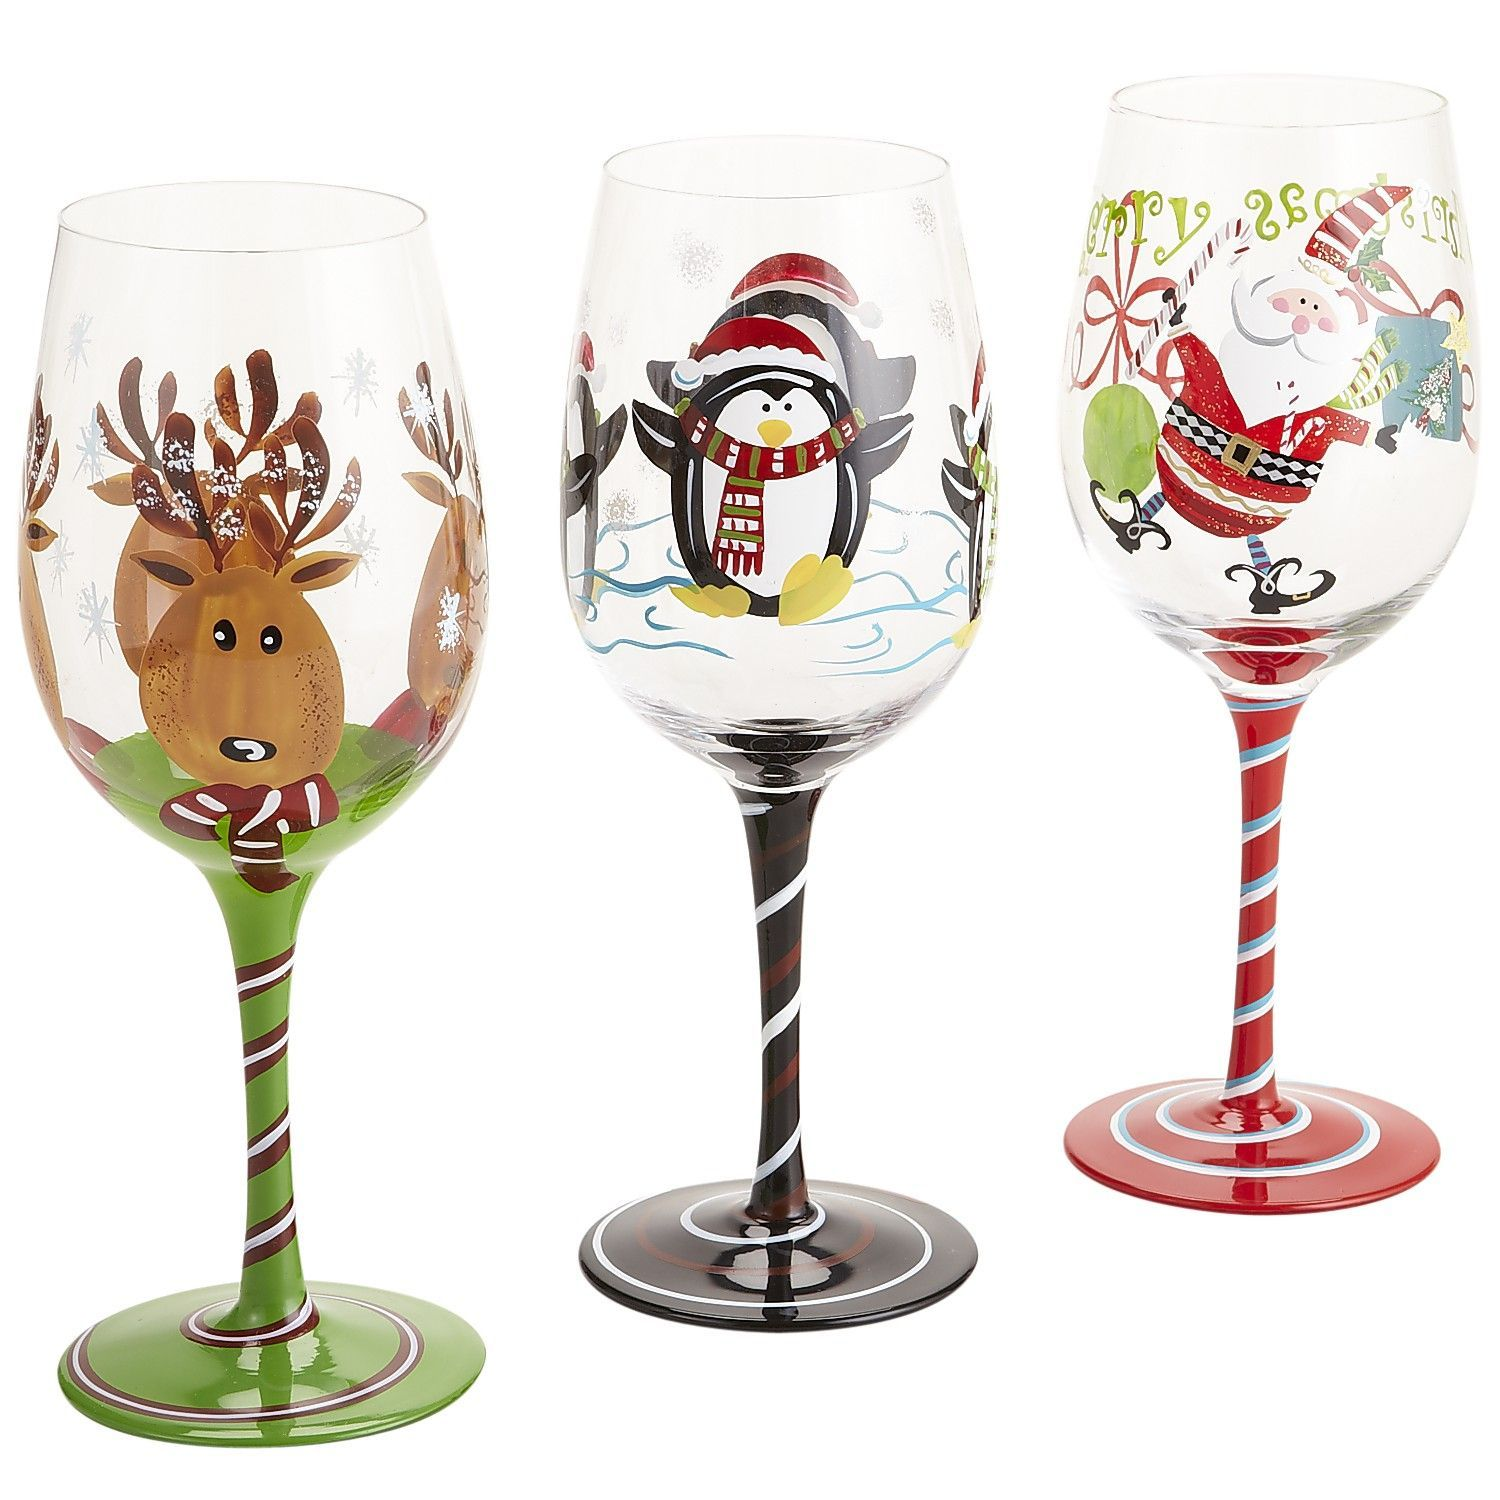 top 25 ideas about wine glasses christmas on pinterest christmas trees christmas stockings and tea light holder - Wine Glass Design Ideas